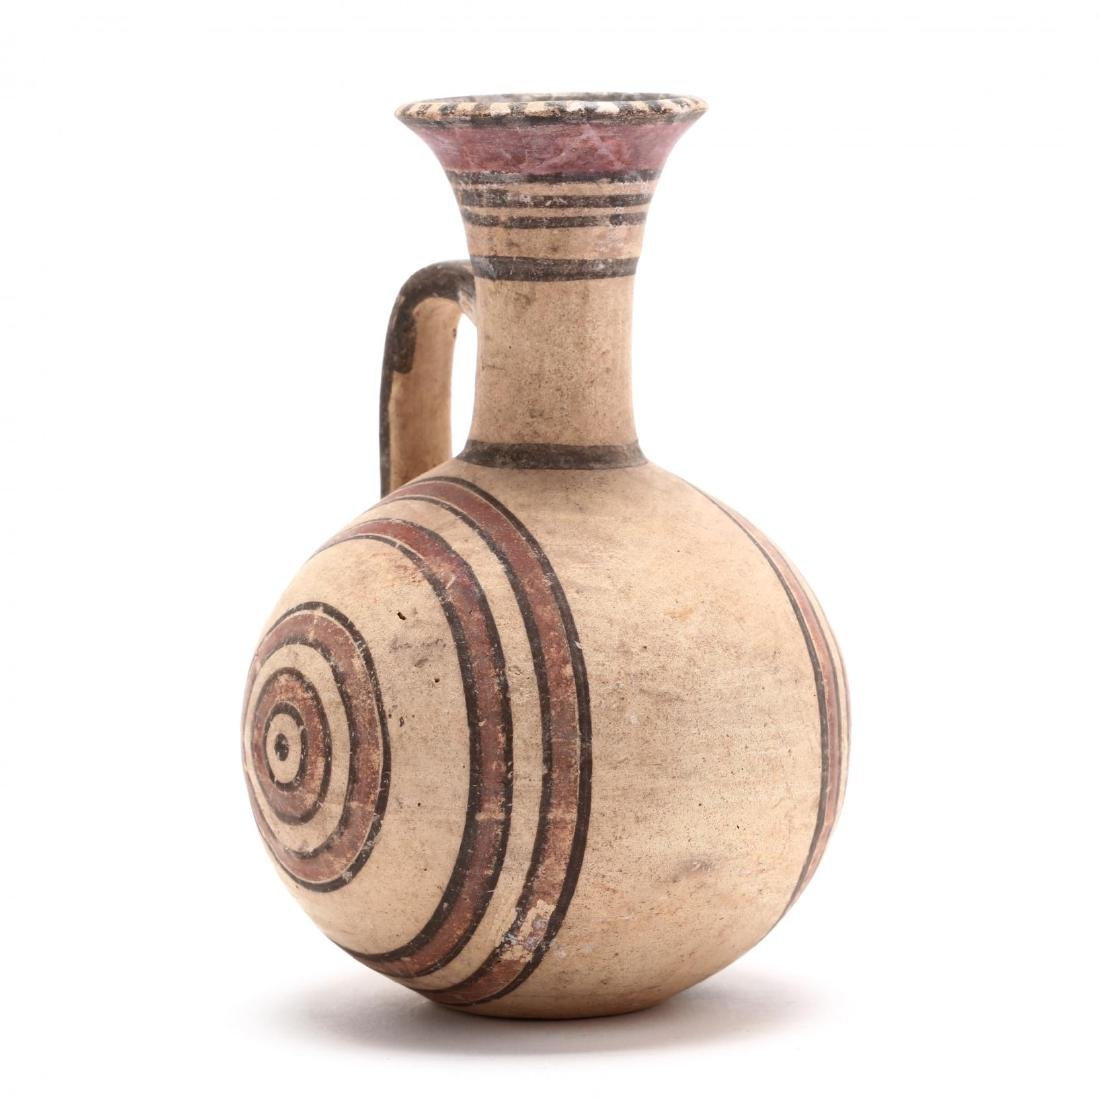 Cypro-Archaic Barrel Flask